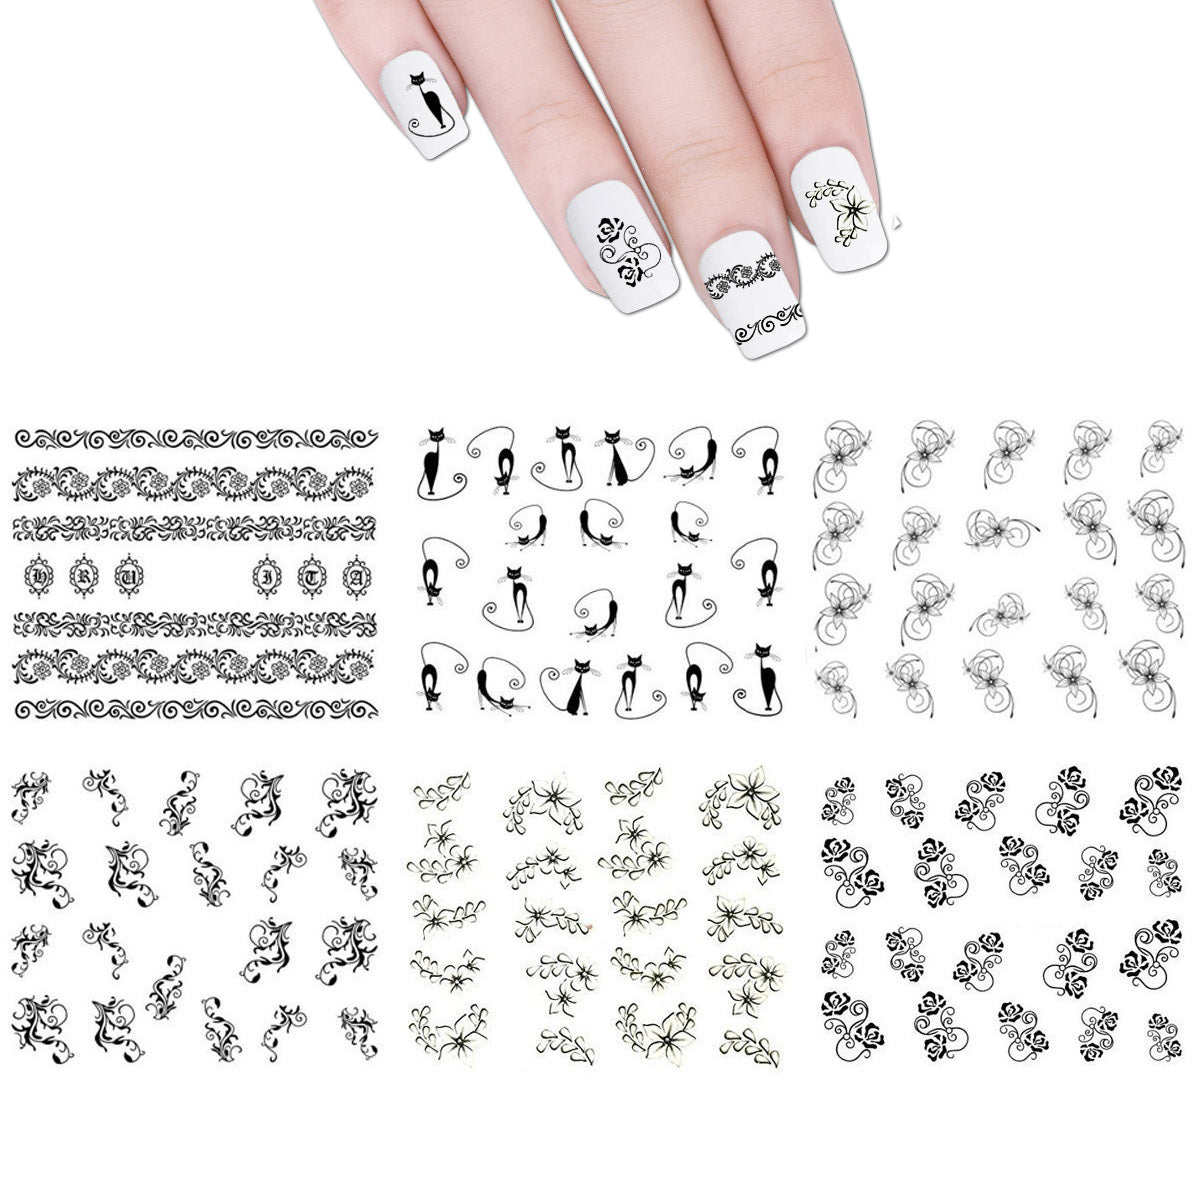 Wrapables Nail Art Water Nail Stickers Water Transfer Stickers / Nail Art Tattoos / Nail Art Decals, Black & White (6 sheets)